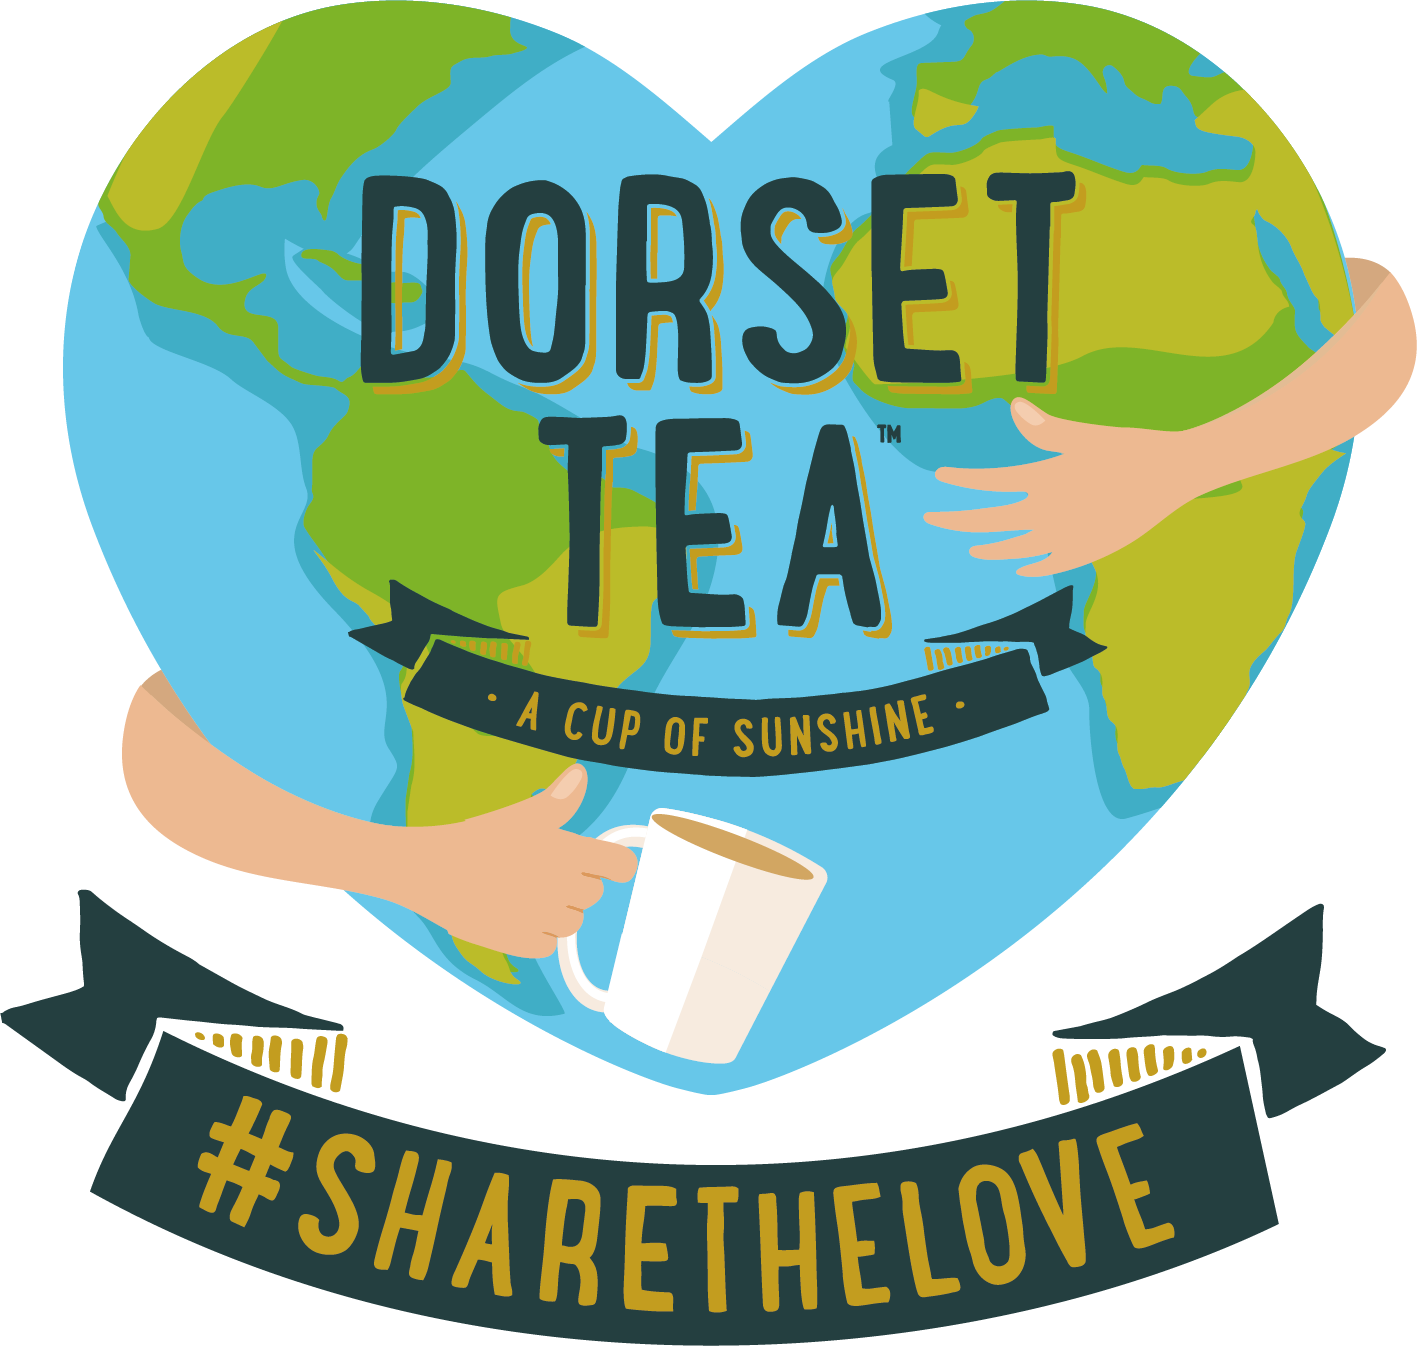 Read Dorset Tea Reviews